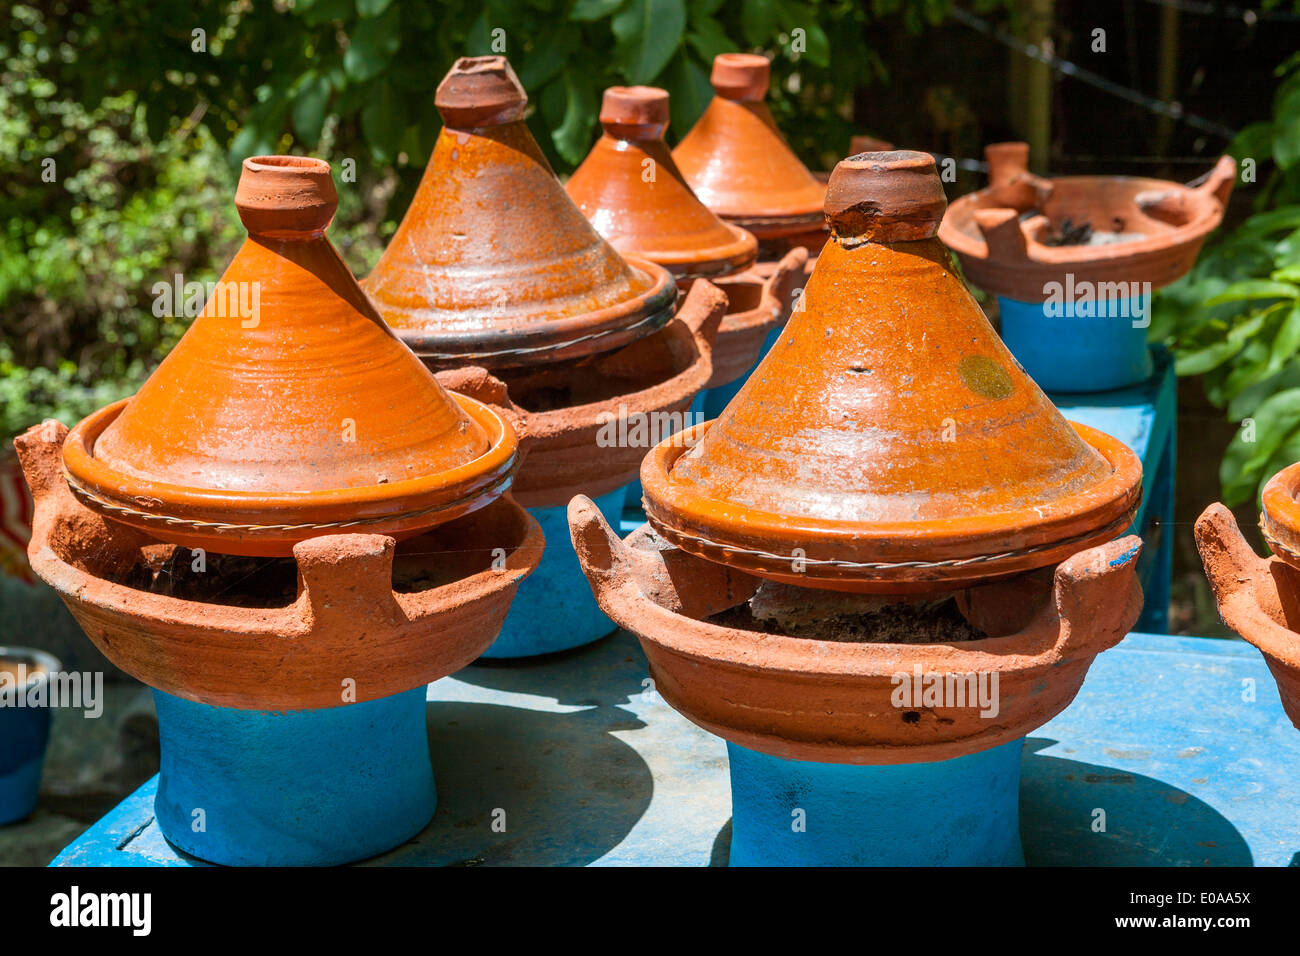 Tajine Moroccan speciality, in a typical pot, Ourika Valley, Morocco. - Stock Image